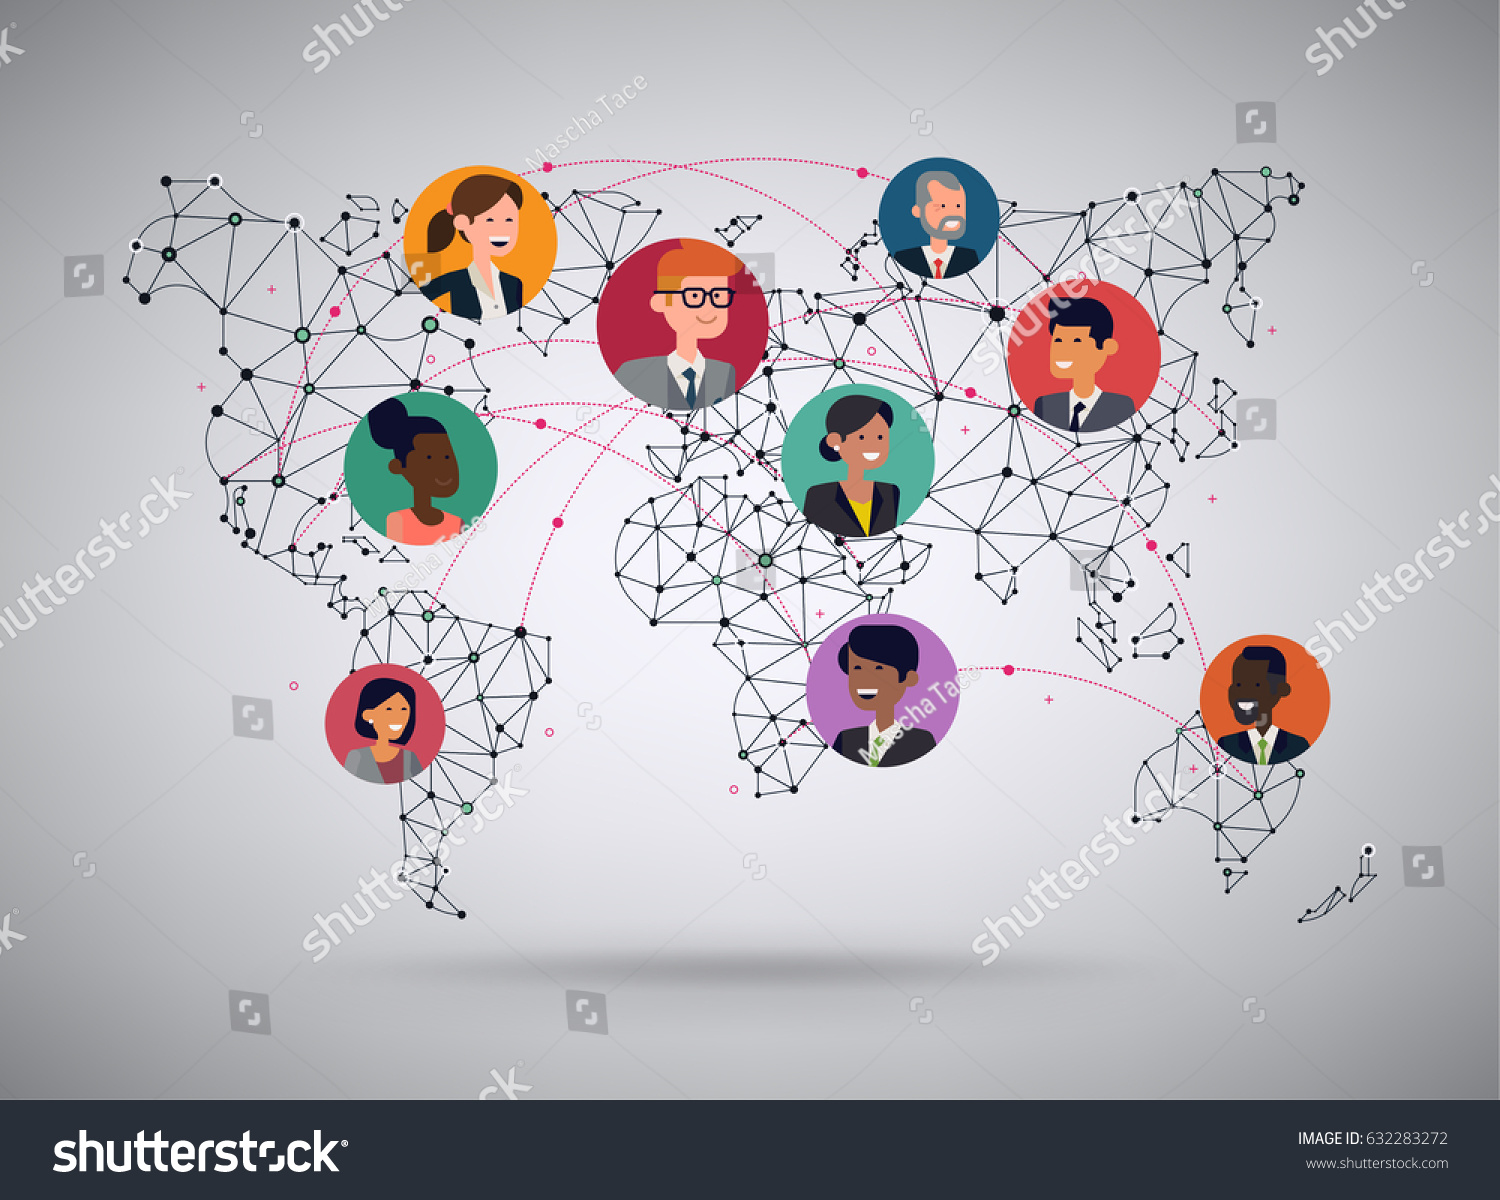 Vector wireframe mesh polygonal world map vectores en stock vector wireframe mesh polygonal world map with various flat design character portraits global business network gumiabroncs Gallery